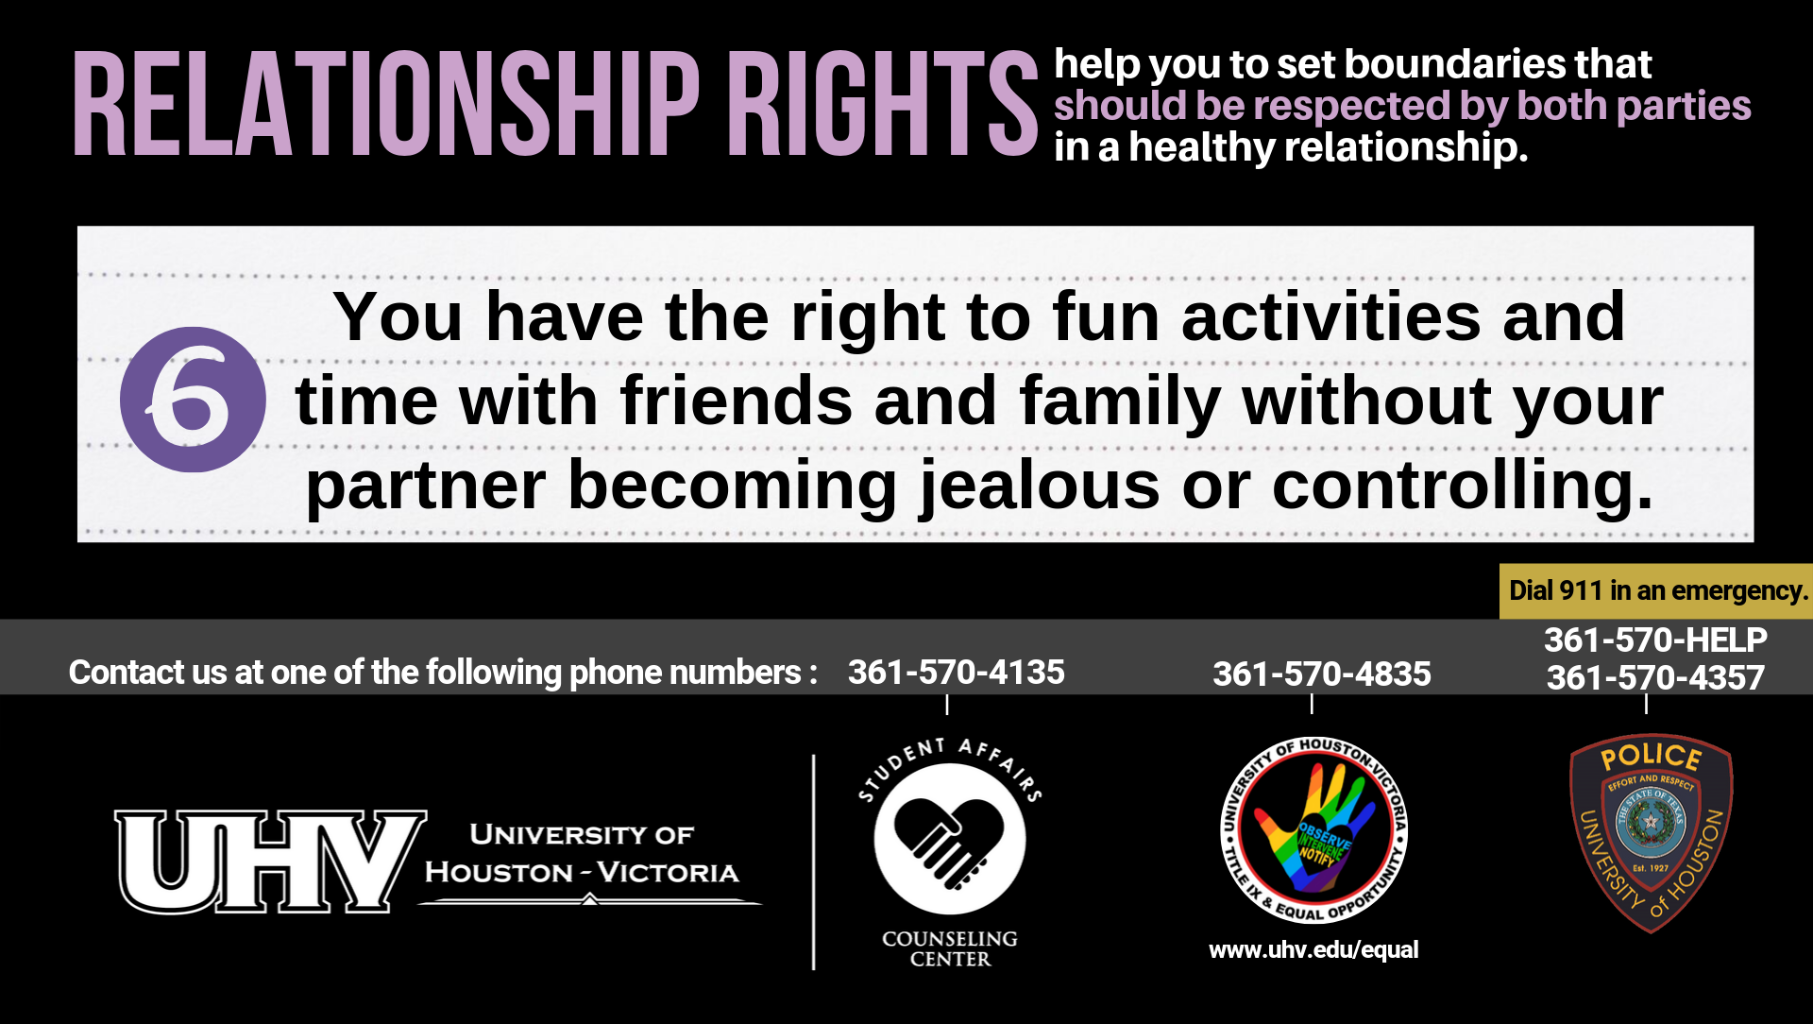 Relationship Rights help you to set boundaries that should be respected by both parties in a healthy relationship. 6. You have the right to fun activities and time with friends and family without your partner becoming jealous or controlling. University of Houston-Victoria Title IX and Equal Opportunity Logo (rainbow hand with heart insert with words Observe, Intervene, Notify).